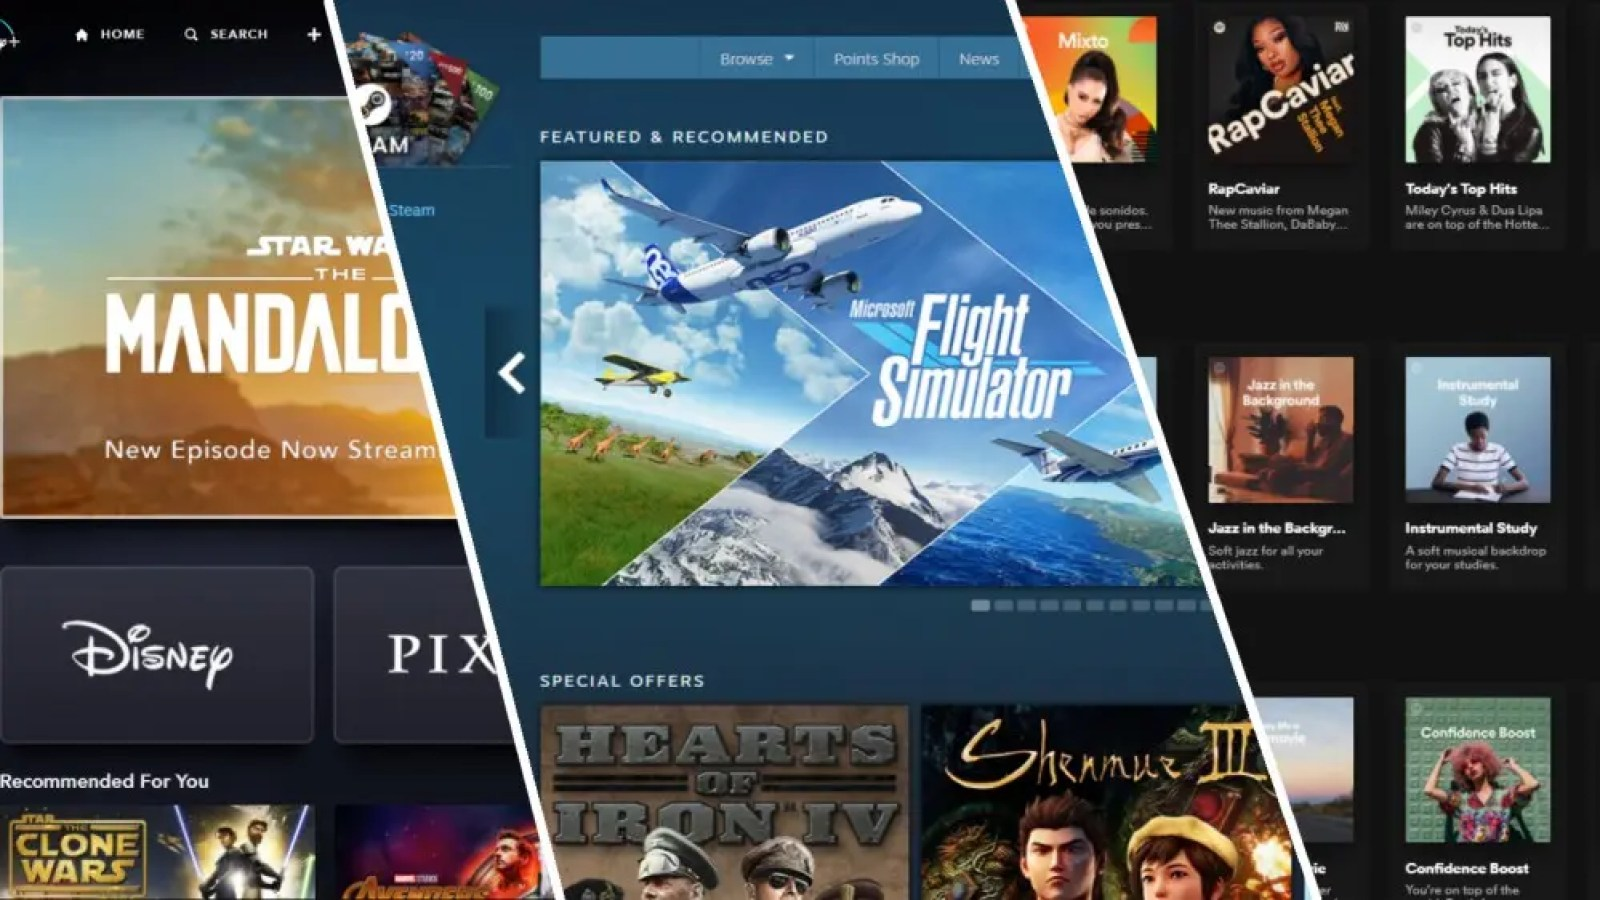 Screenshots of Disney+ Home Page, Steam Storefront, and Spotify Home Page.